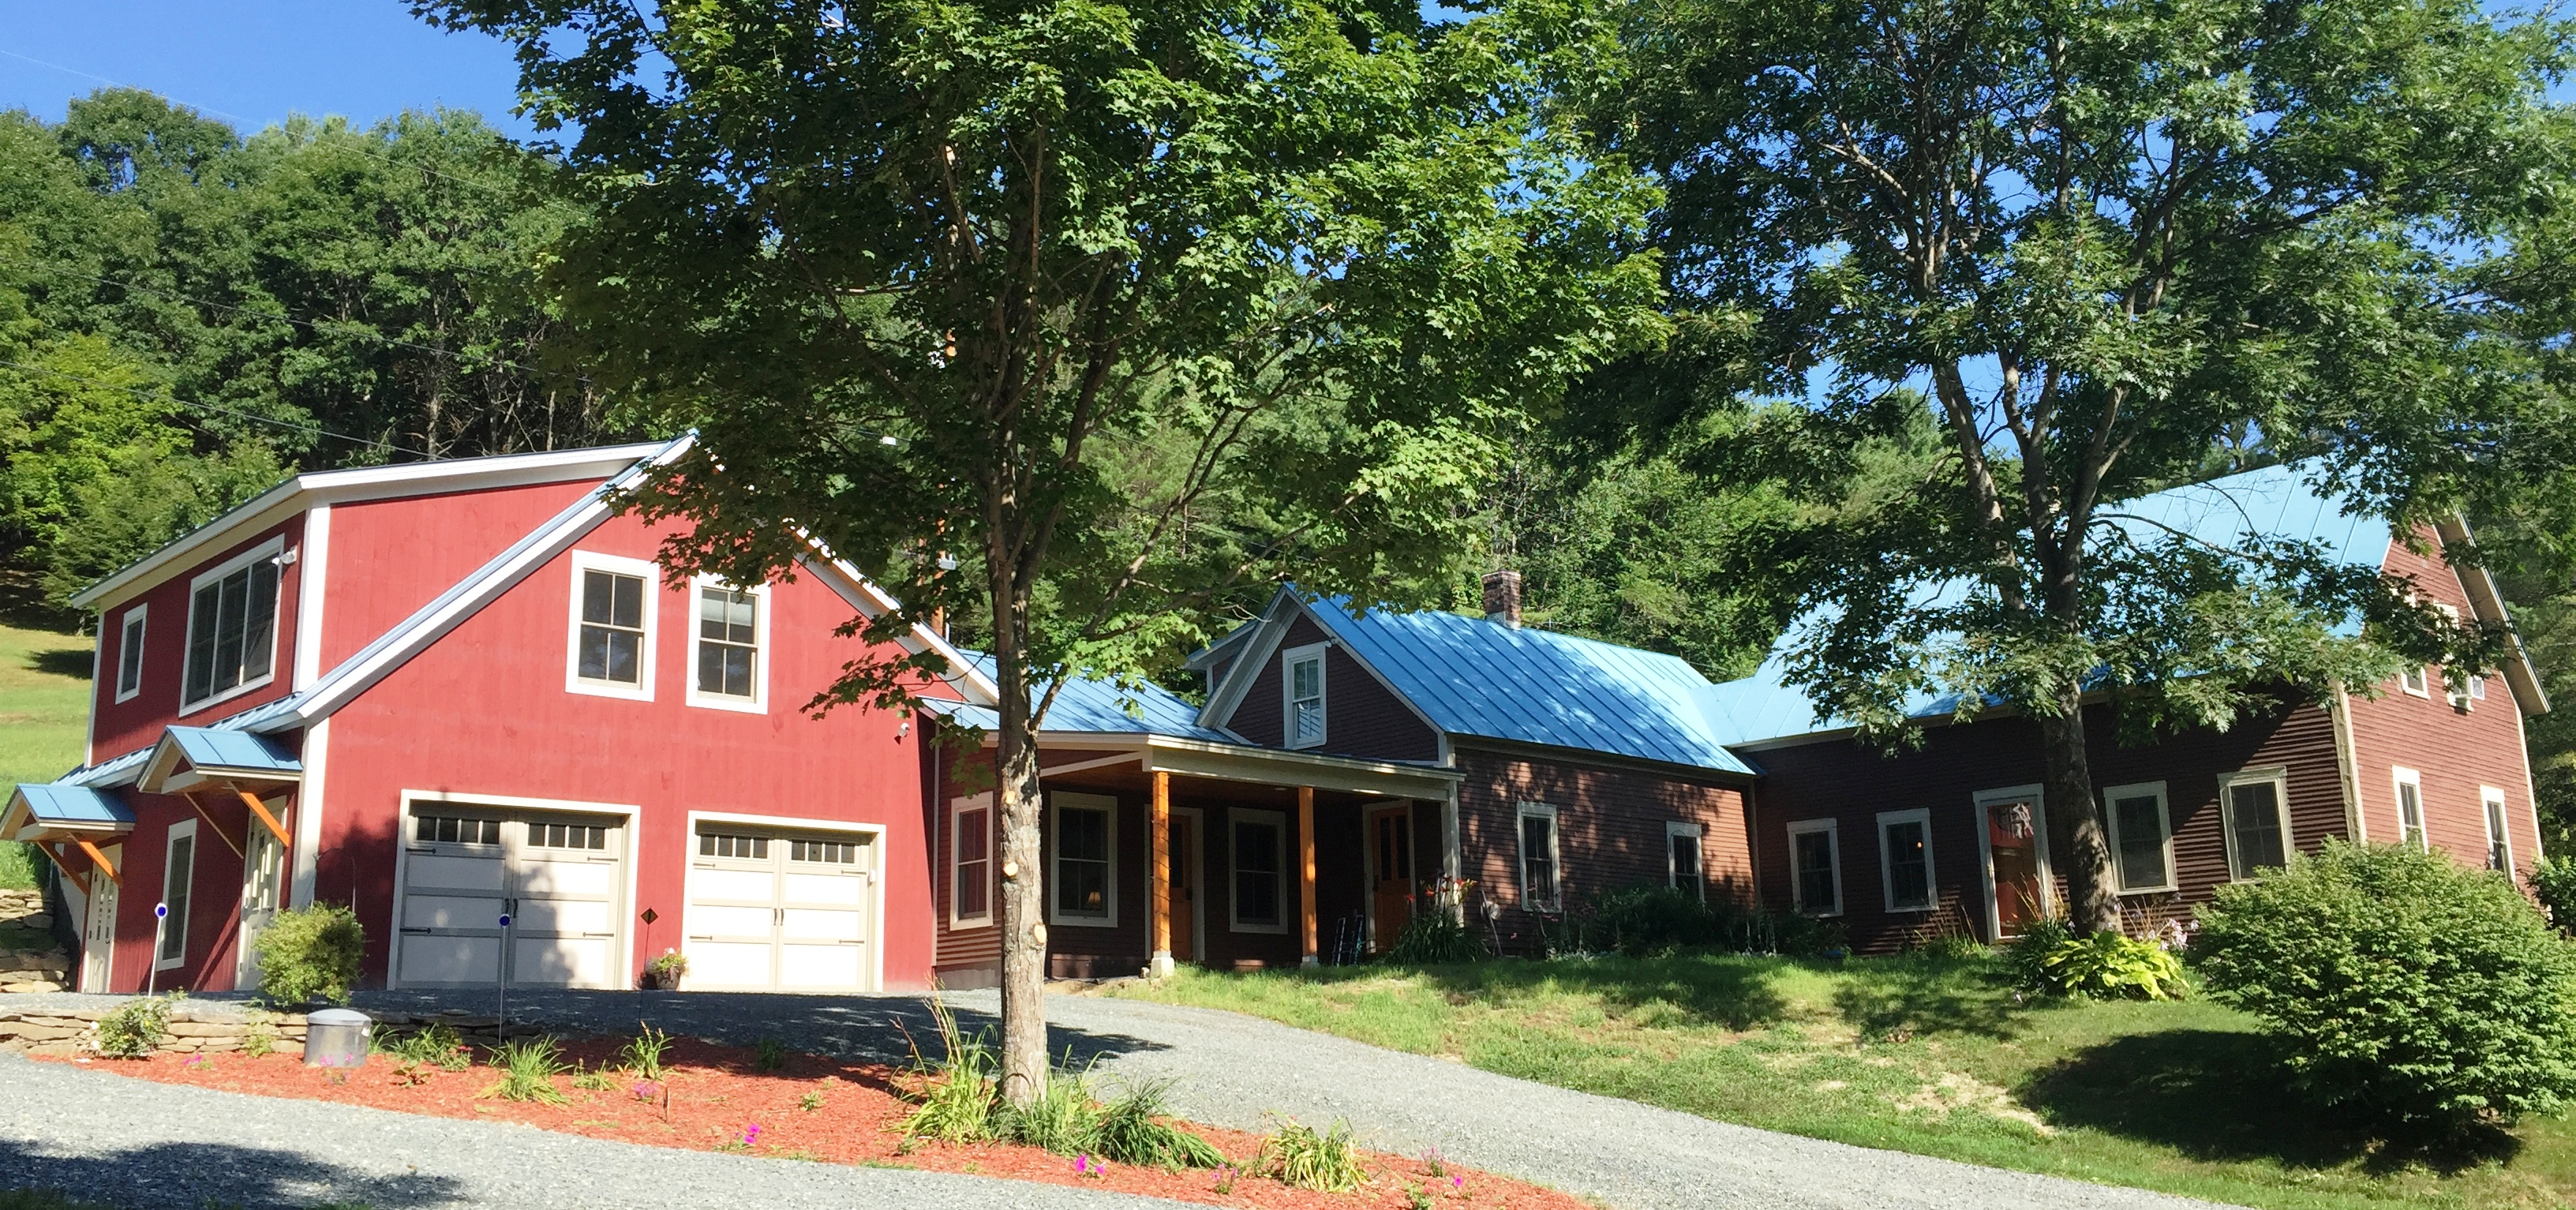 Bassette Real Estate Group: 611 Route 12, Hartland VT 05048